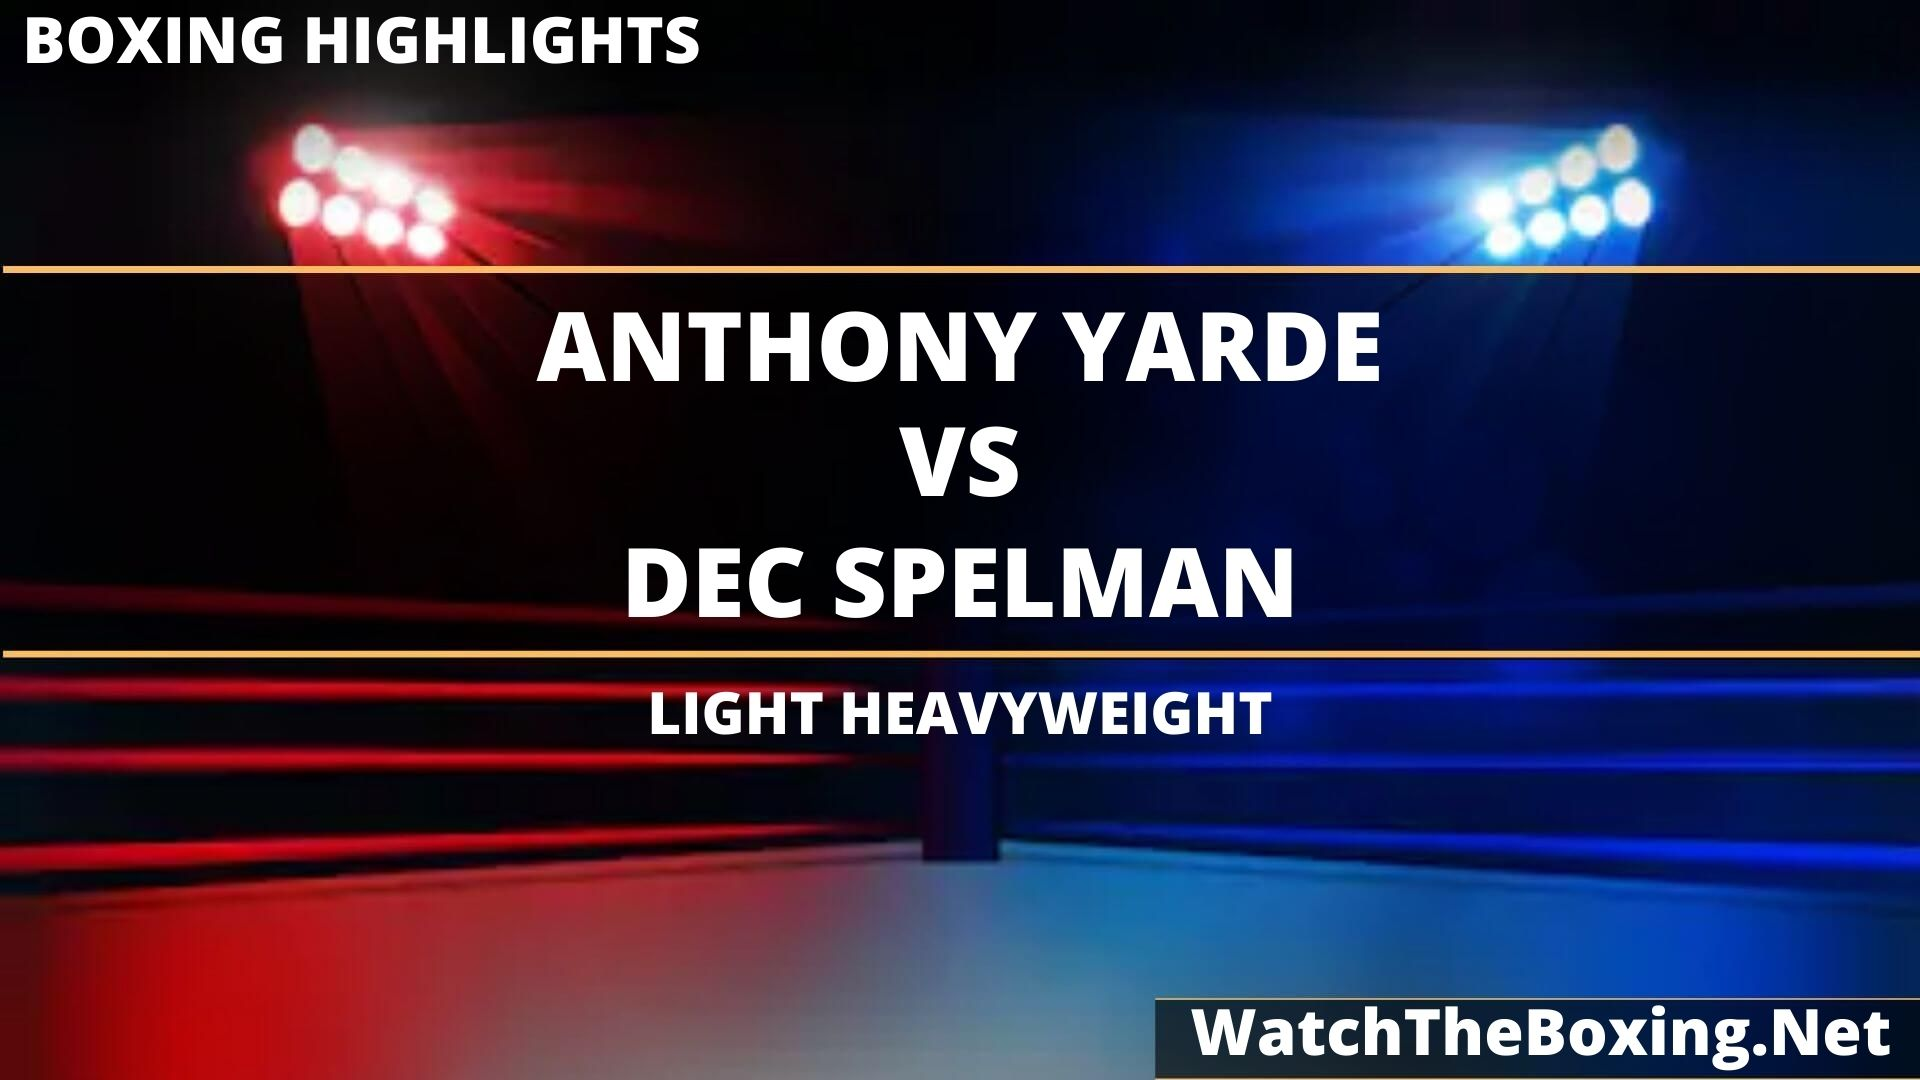 Anthony Yarde Vs Dec Spelman Highlights 2020 Light Heavyweight